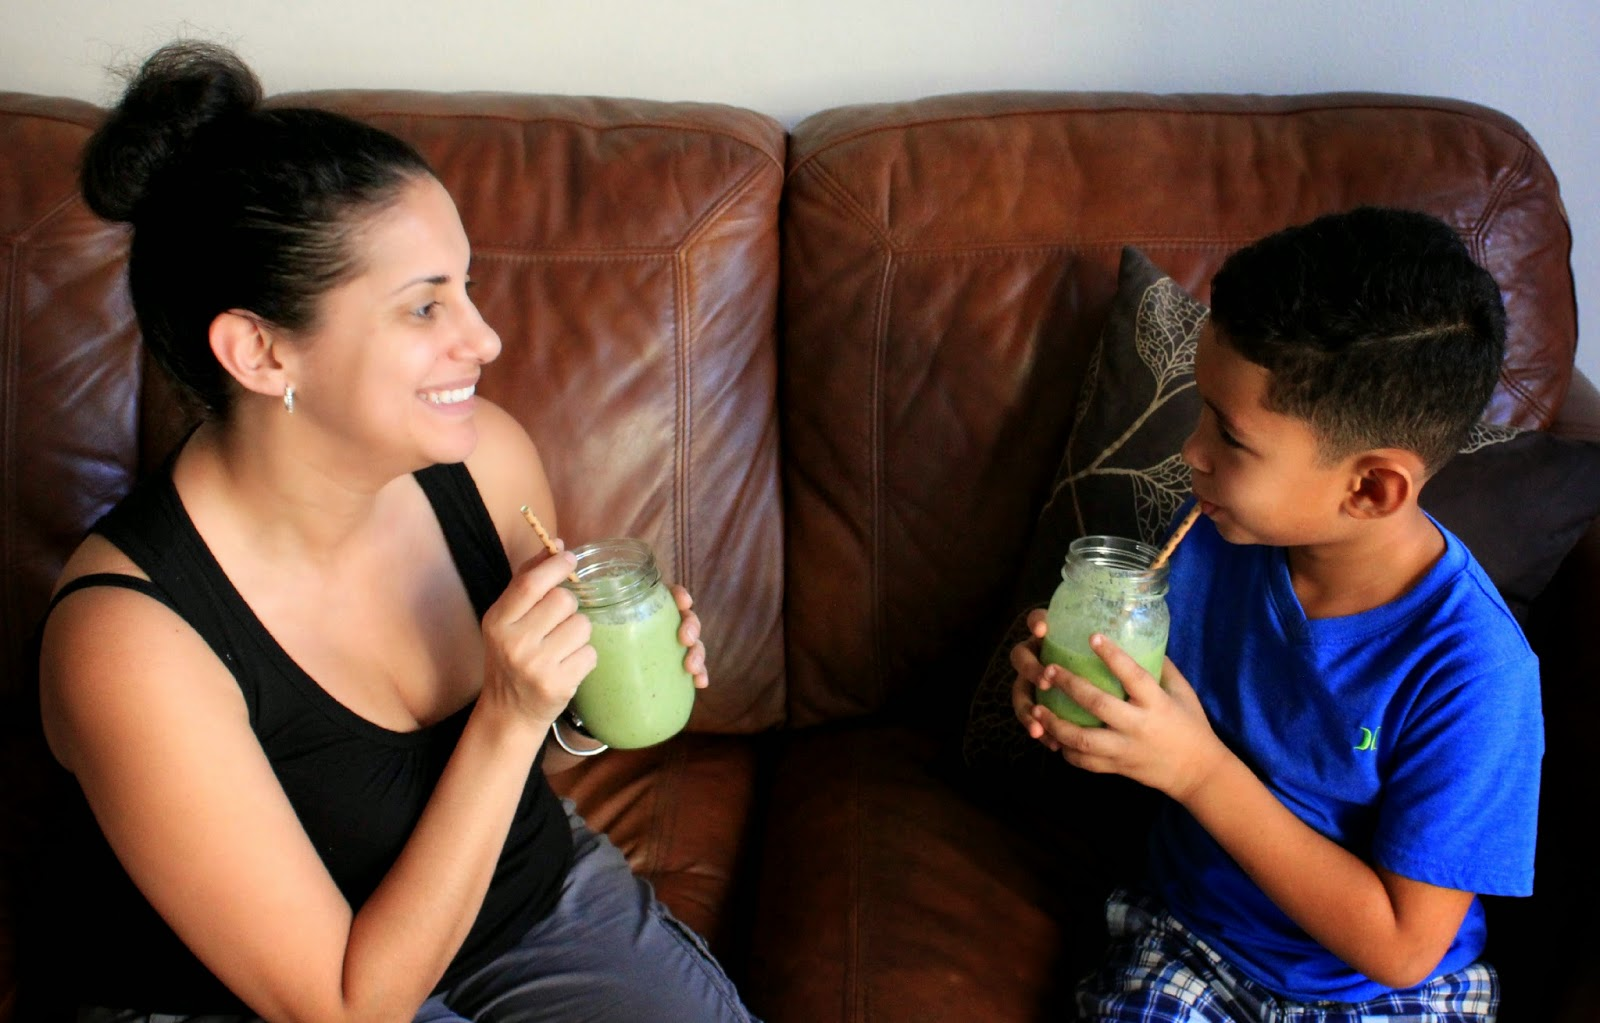 Start your day with a power smoothie! #MullerMoment #ad